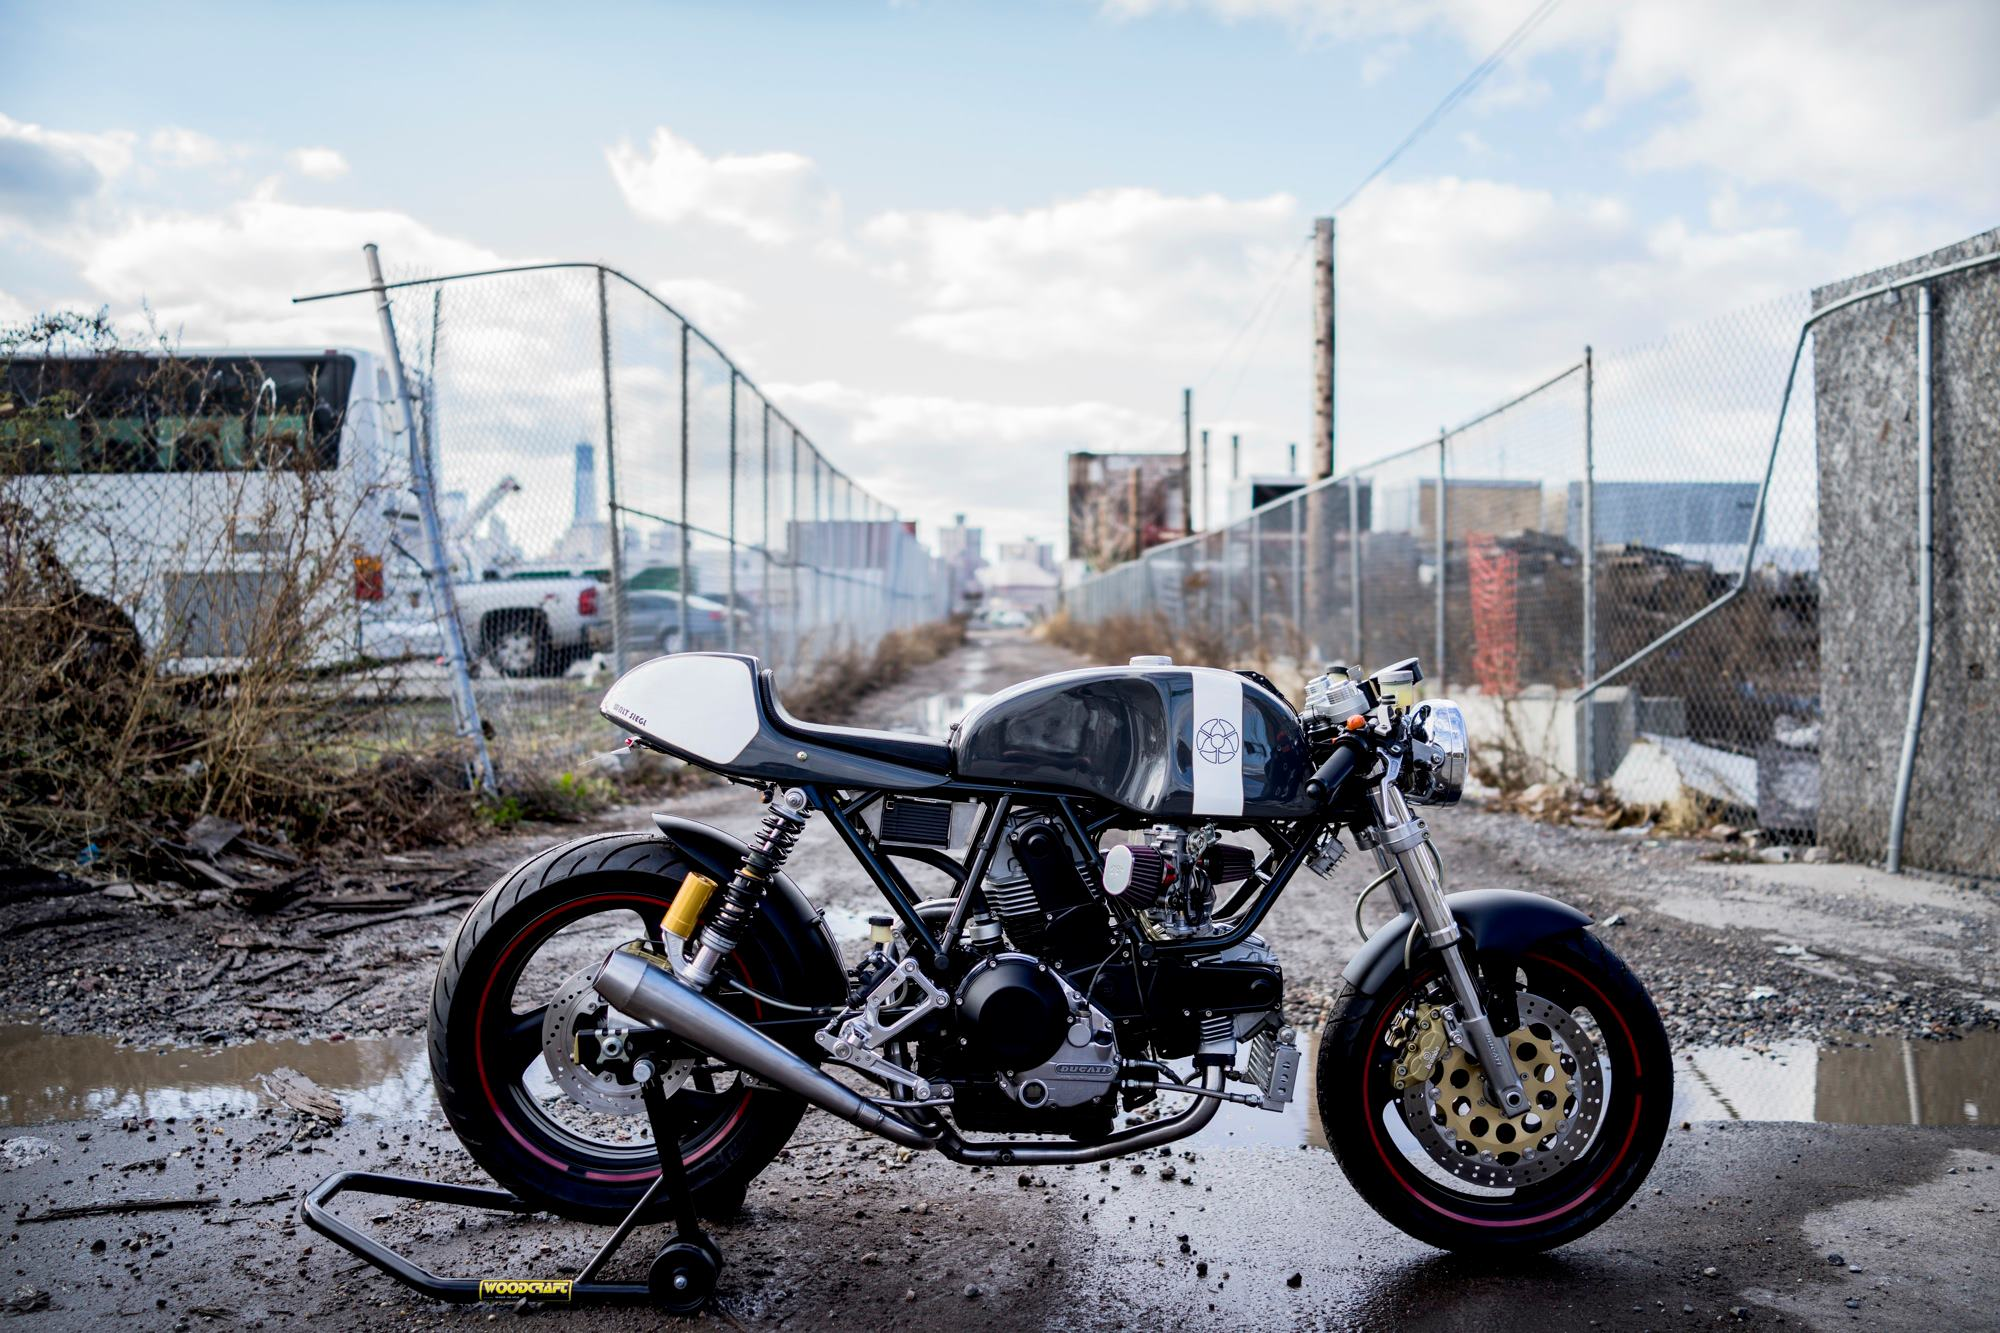 26 Triumph Cafe Racer Wallpapers On Wallpapersafari